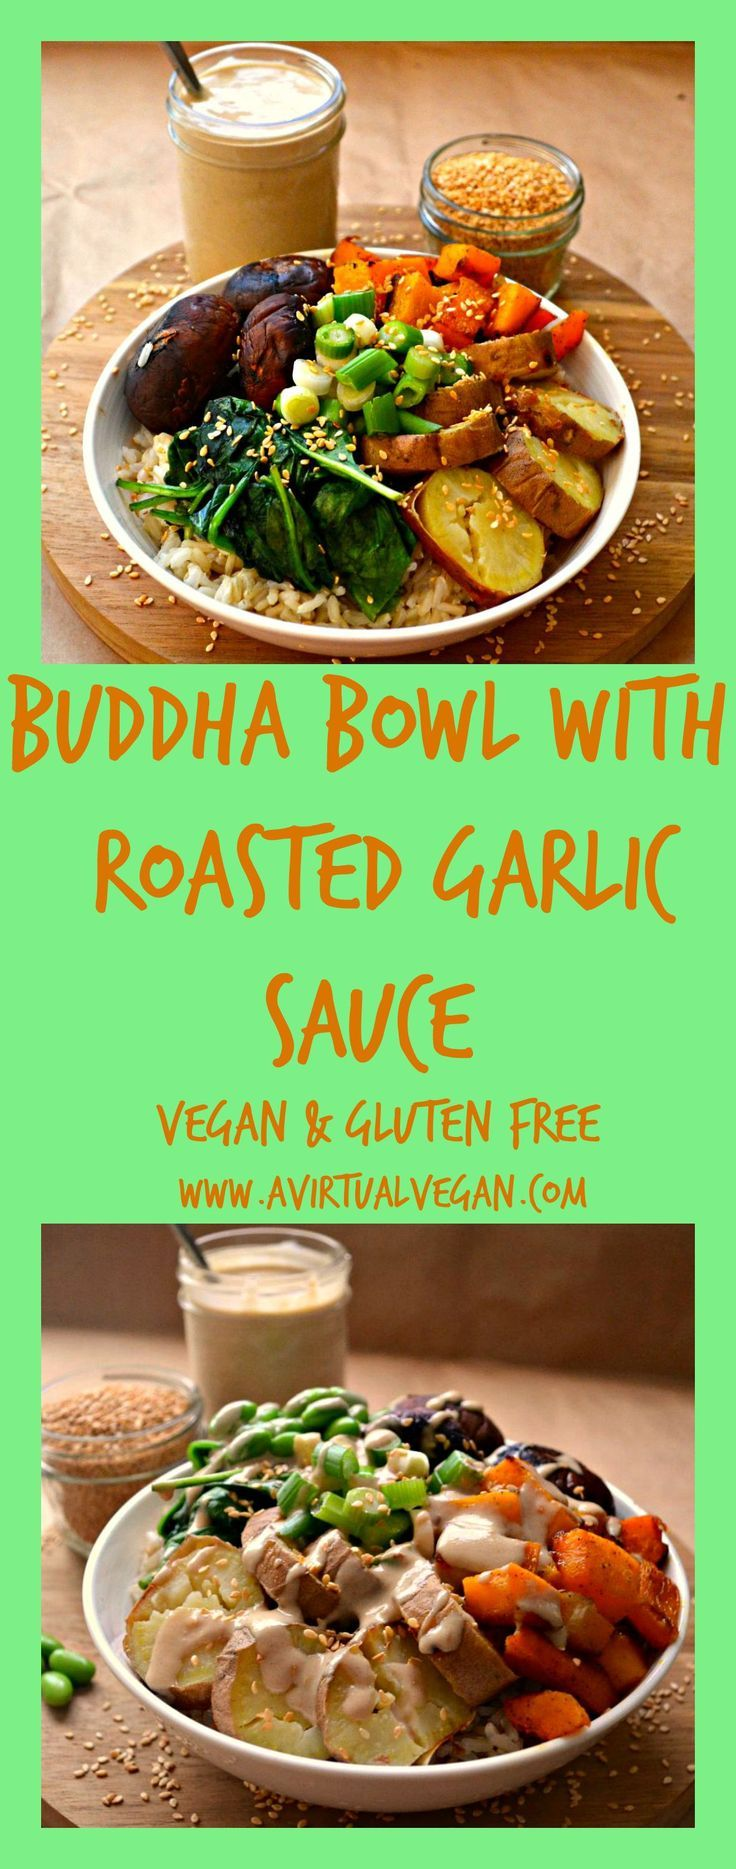 These Buddha Bowls are full to bursting with nutty brown rice, sweet roasted vegetables & wilted greens. Top that with crunchy raw green onions, sesame seeds and a drizzle of roasted garlic sauce and you have a perfect, delicious & healthy meal in a bowl!